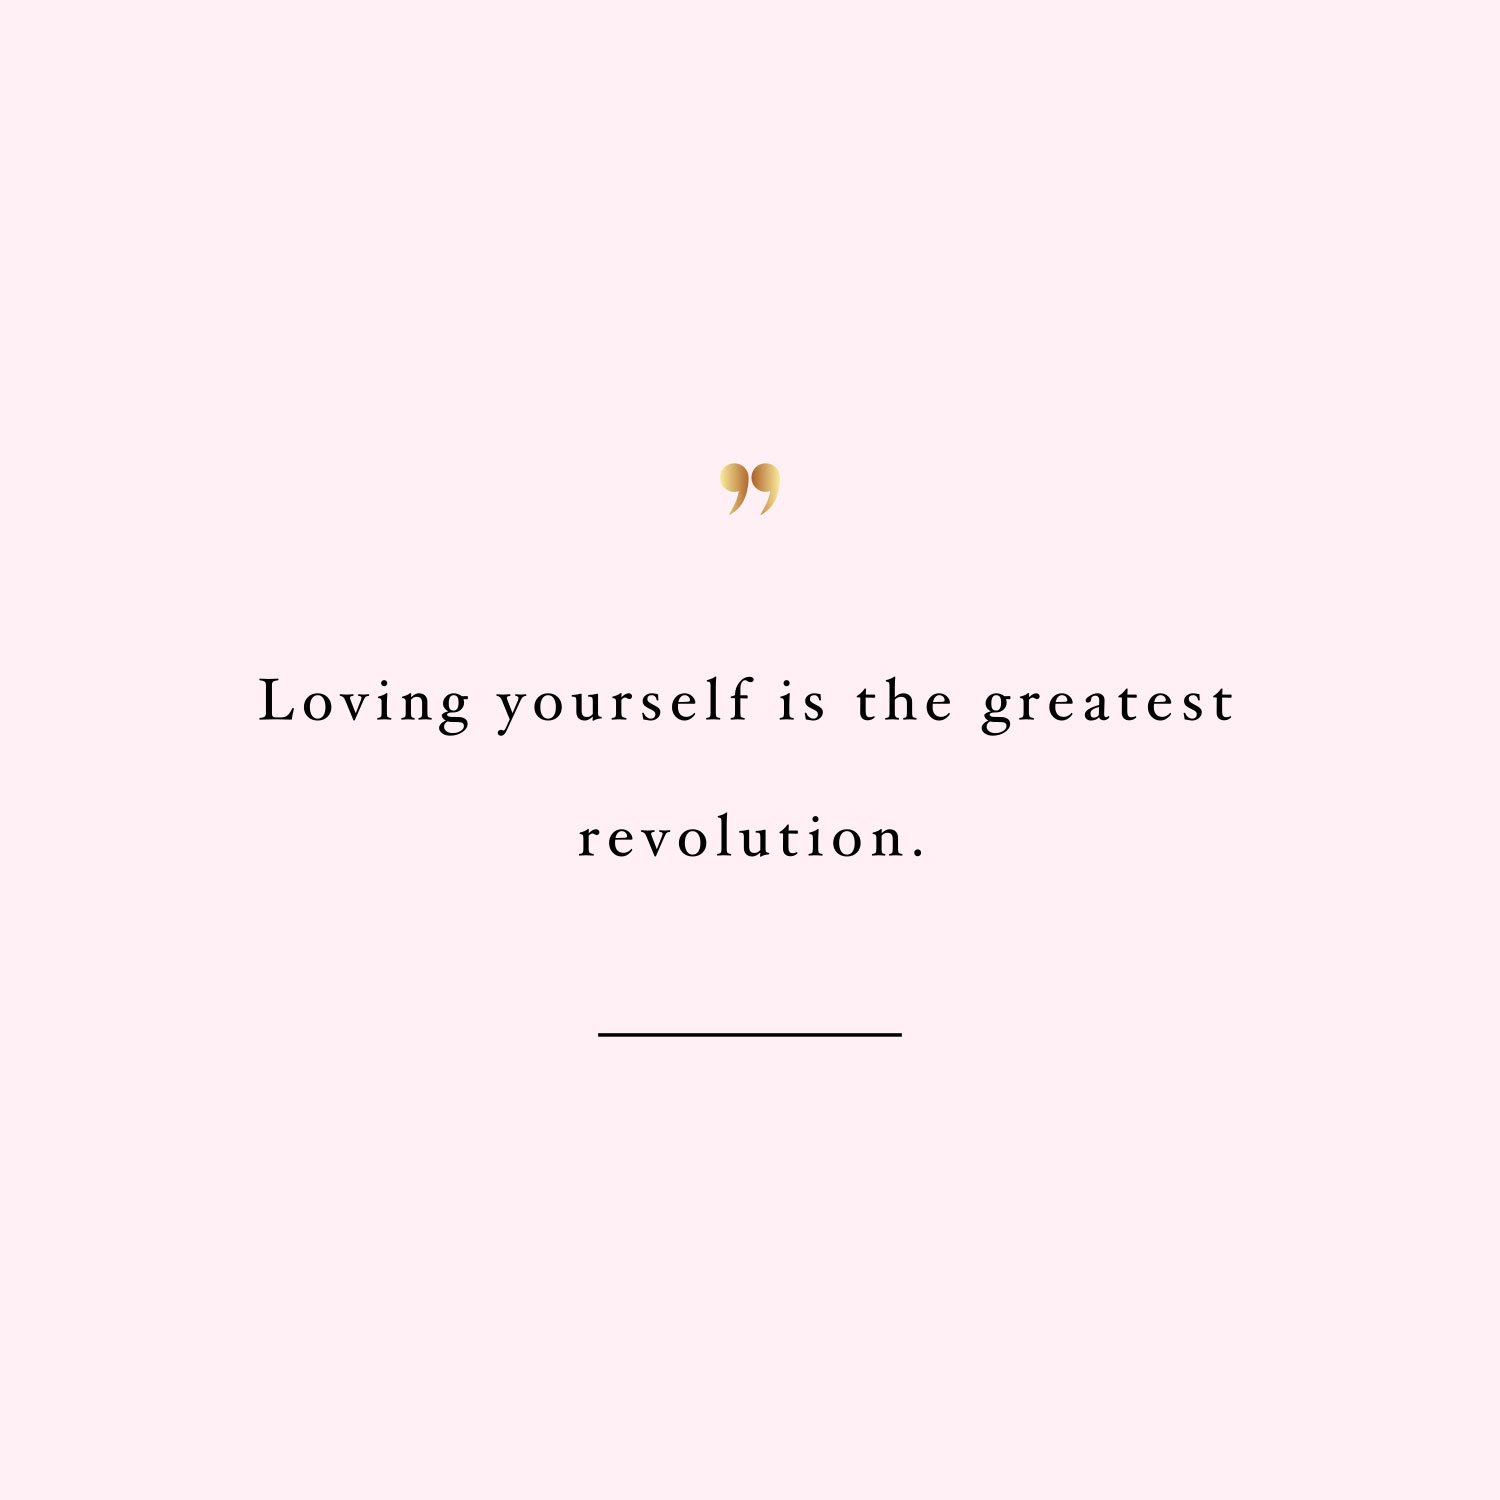 Quotes About Loving Yourself Loving Yourself Revolution  Healthy Lifestyle Motivation